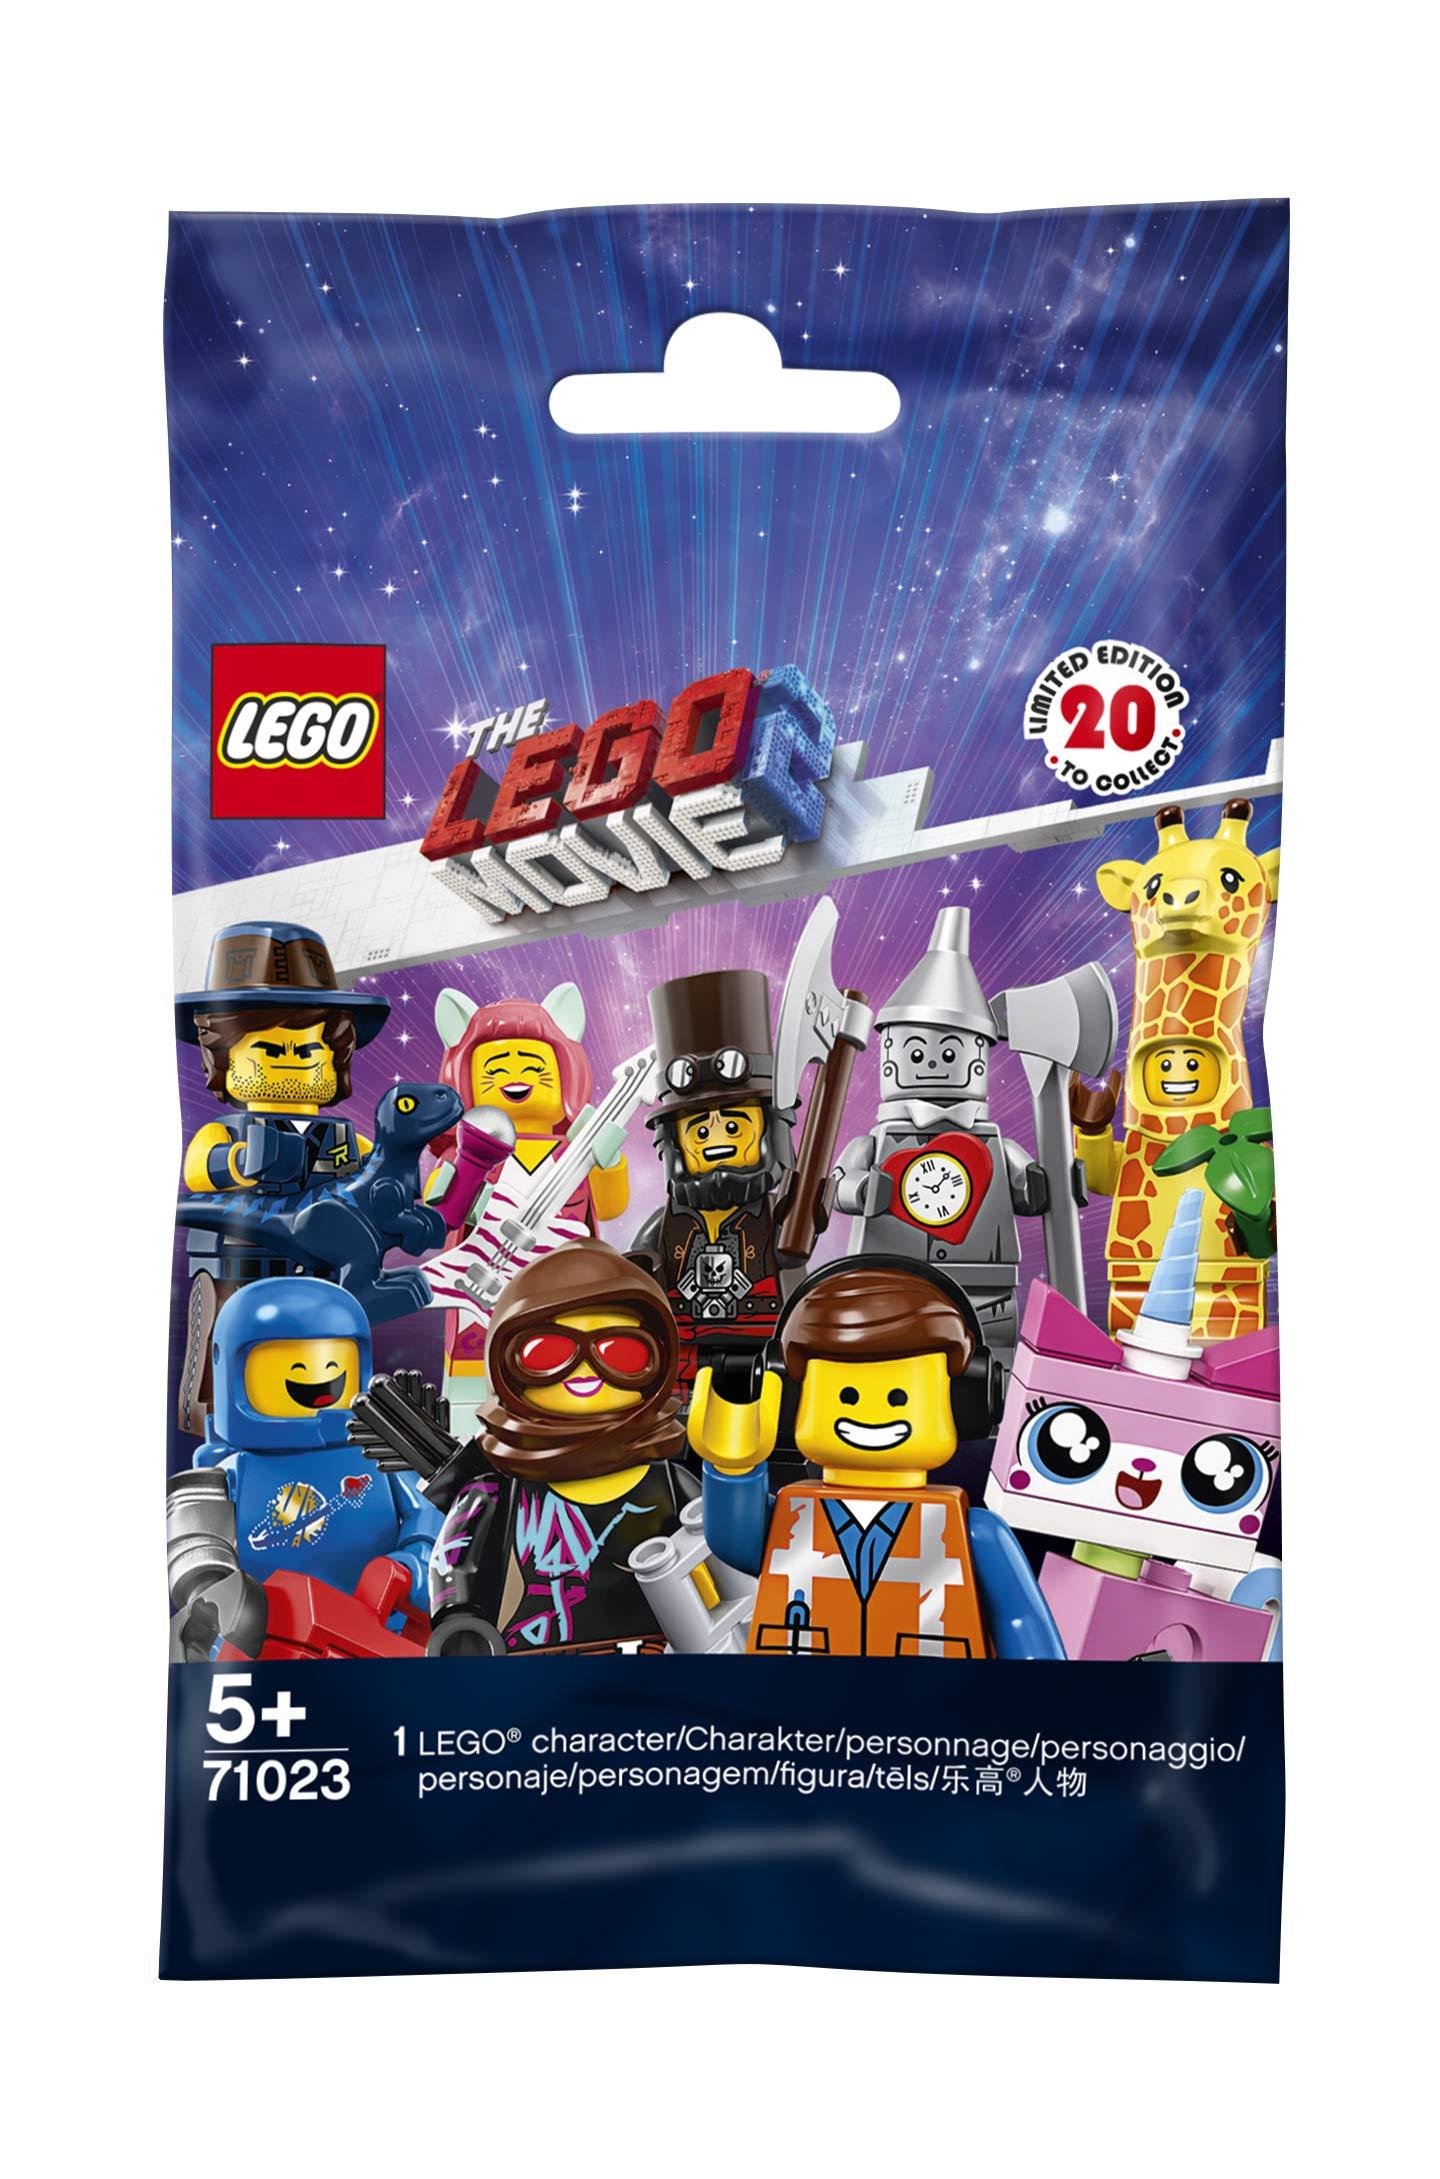 LEGO Movie 2 71023 Minifigures, Collectible Toy Variety of Styles (Style Picked at Random) - 1 Unit